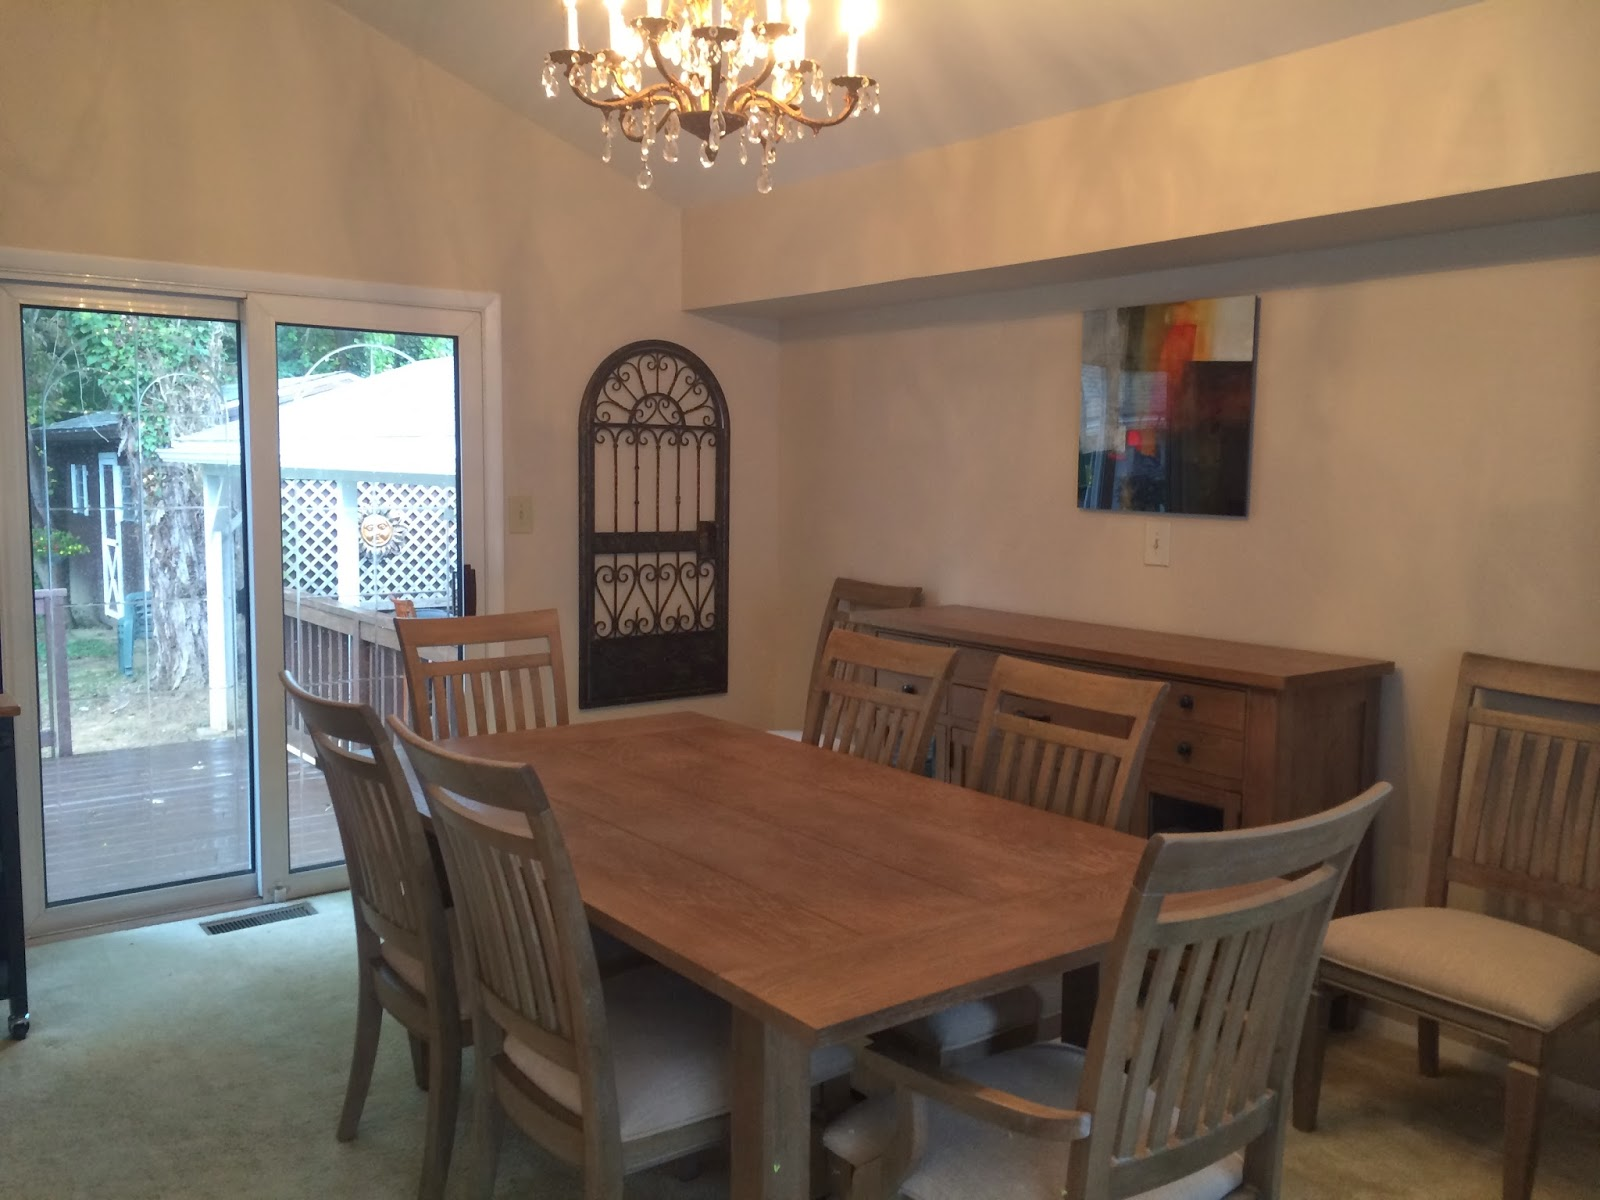 Weathered Dining Room Sets